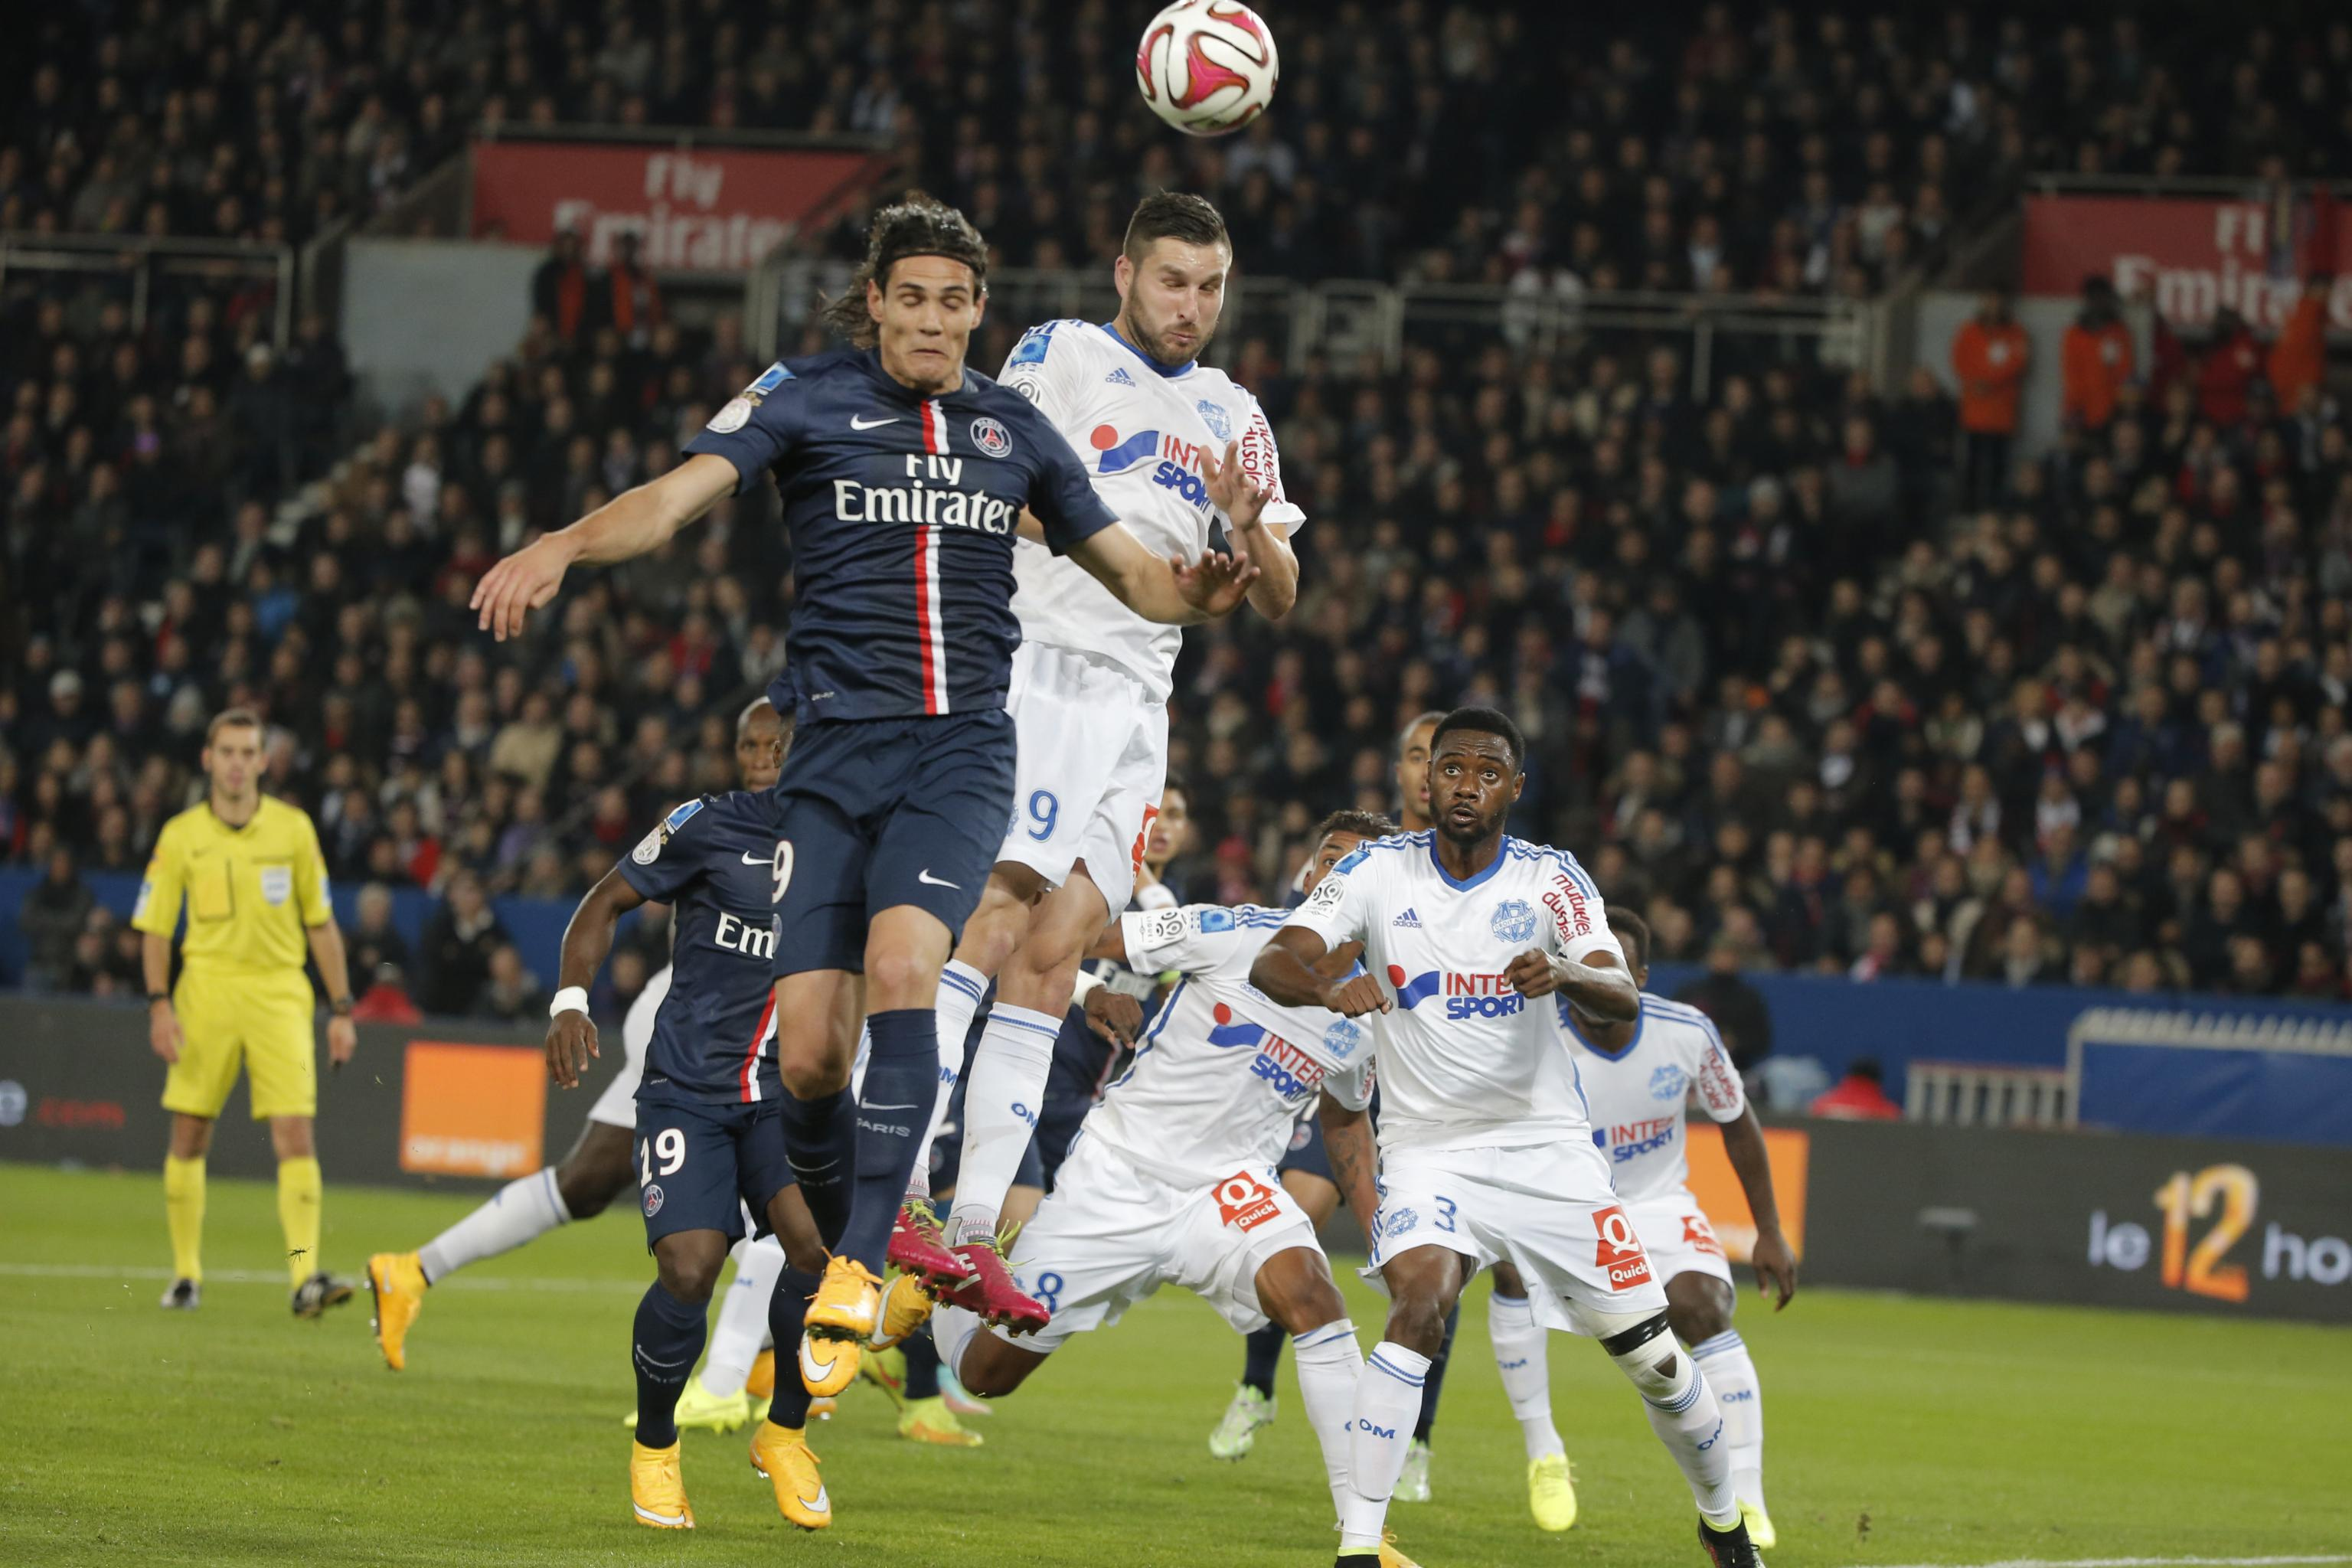 Psg Vs Marseille Score And Reaction From Ligue 1 Game Bleacher Report Latest News Videos And Highlights